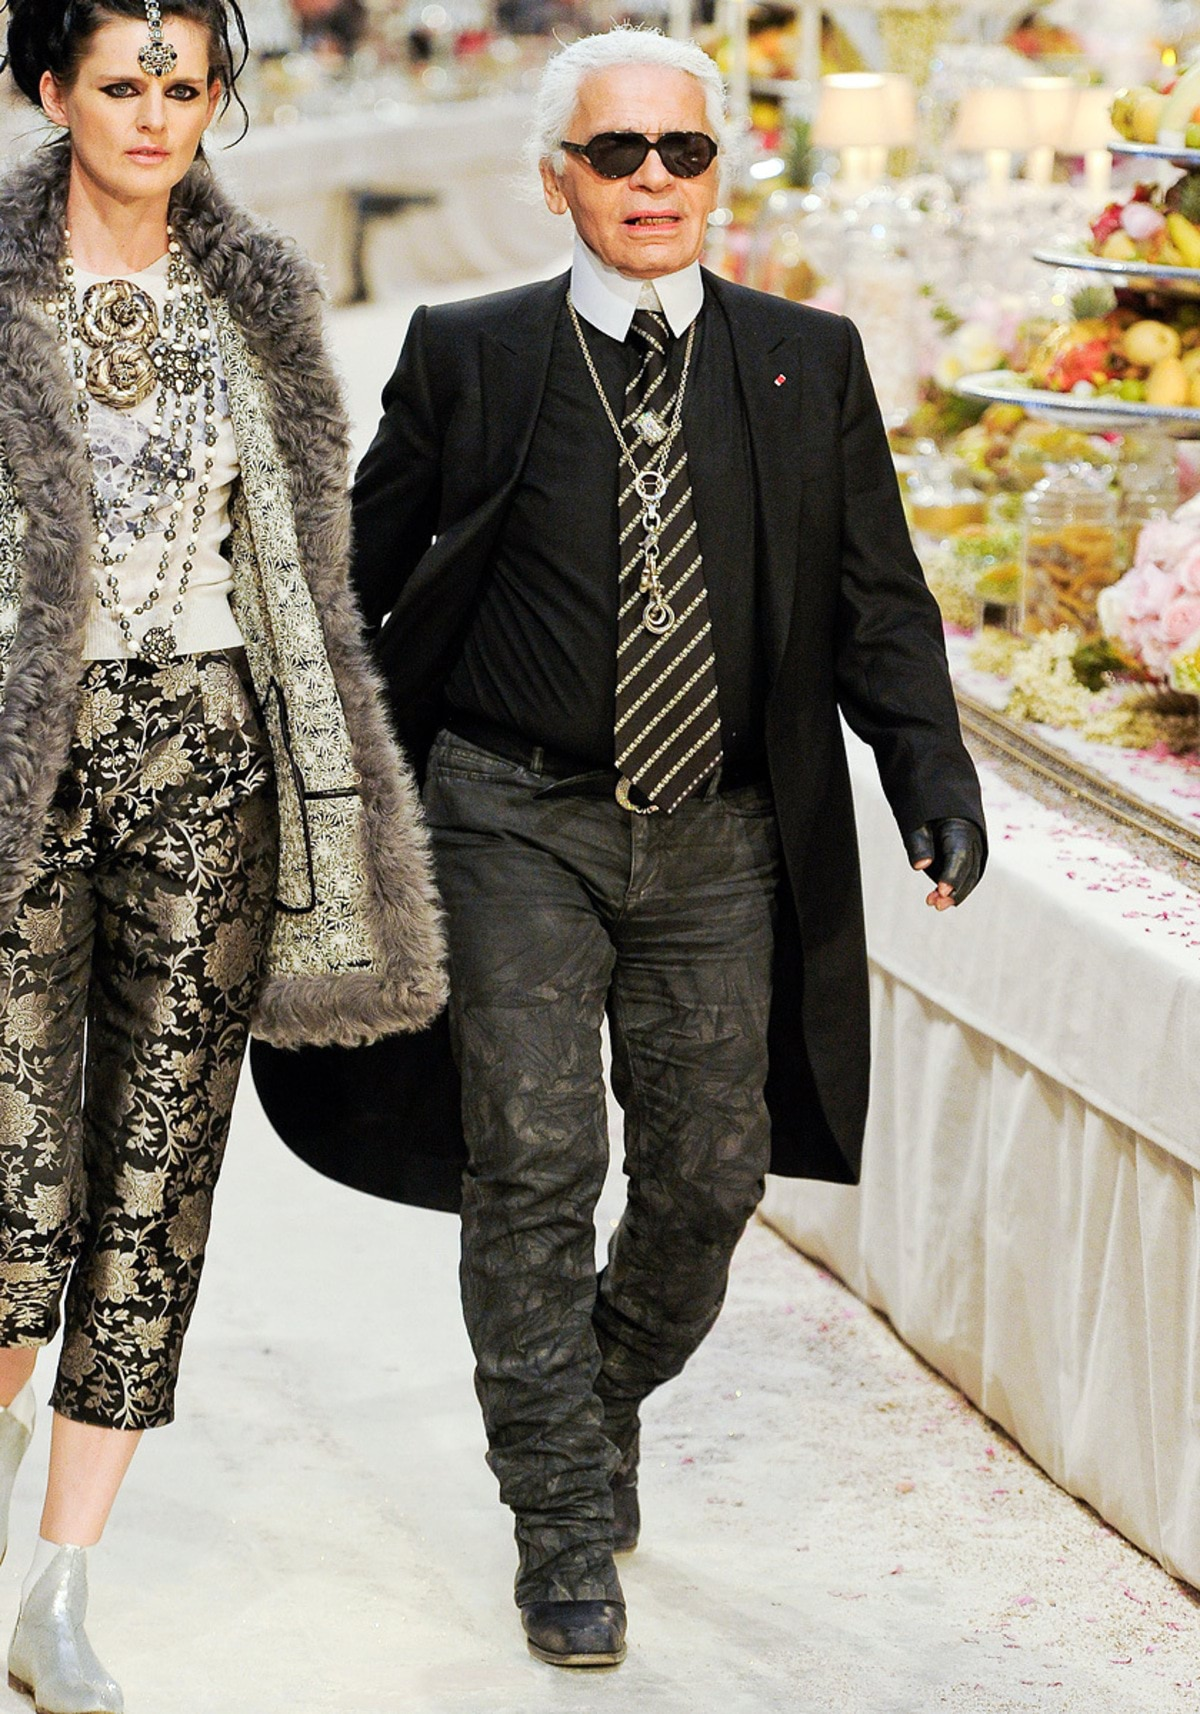 Karl-Lagerfeld-with-Stella-Tennant-on-the-Chanel-Métiers-dArt-PF12-Paris-Bombay-Collection-Runway-on-Exshoesme.com_